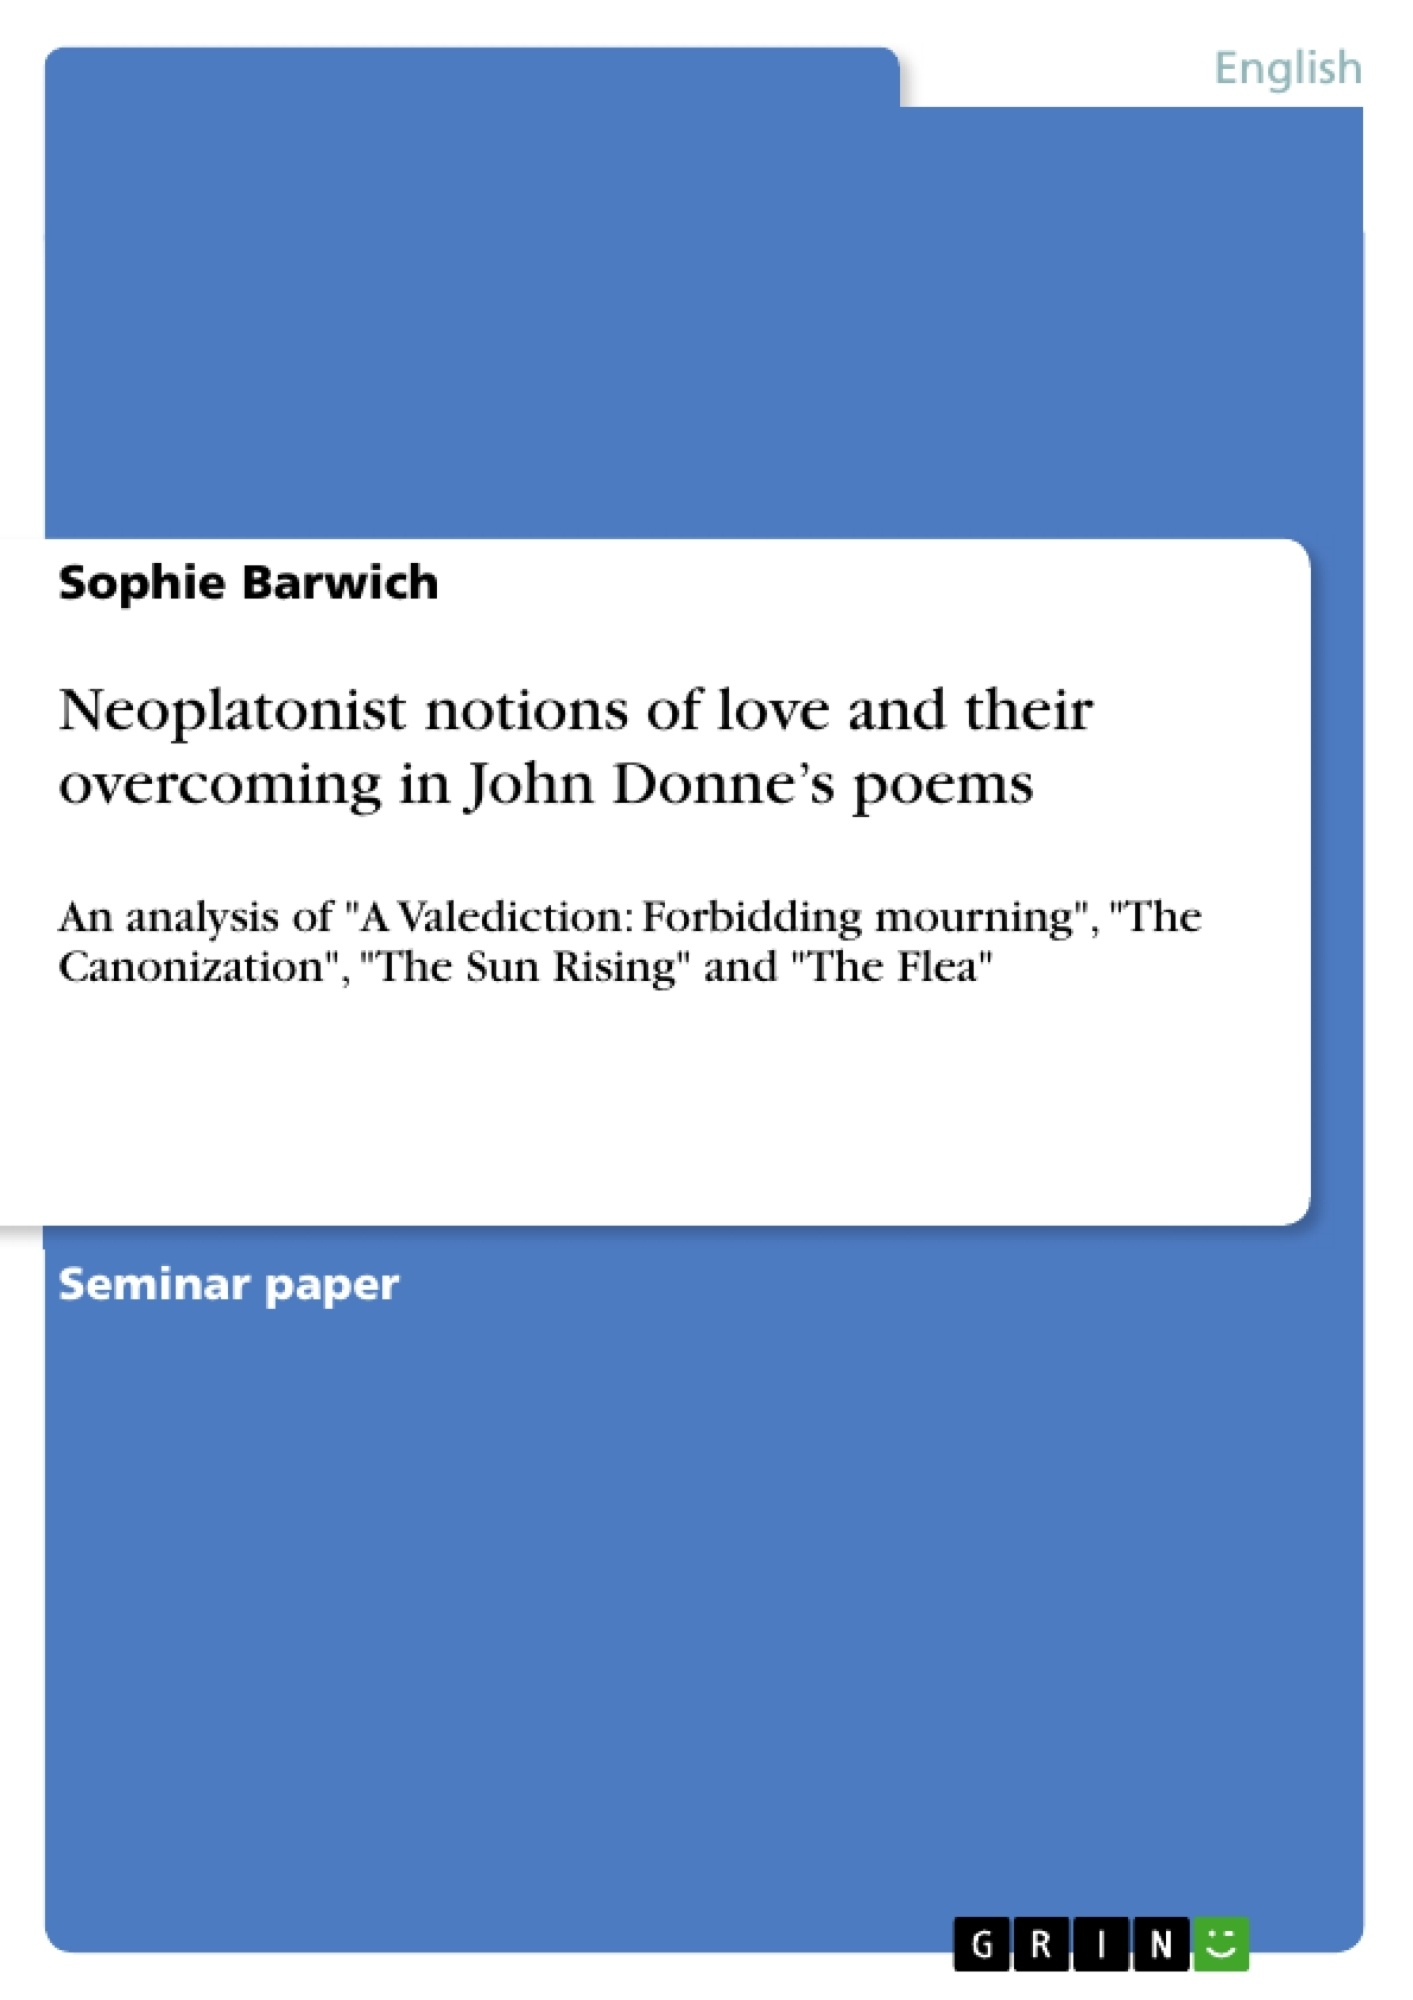 Title: Neoplatonist notions of love and their overcoming in John Donne's poems